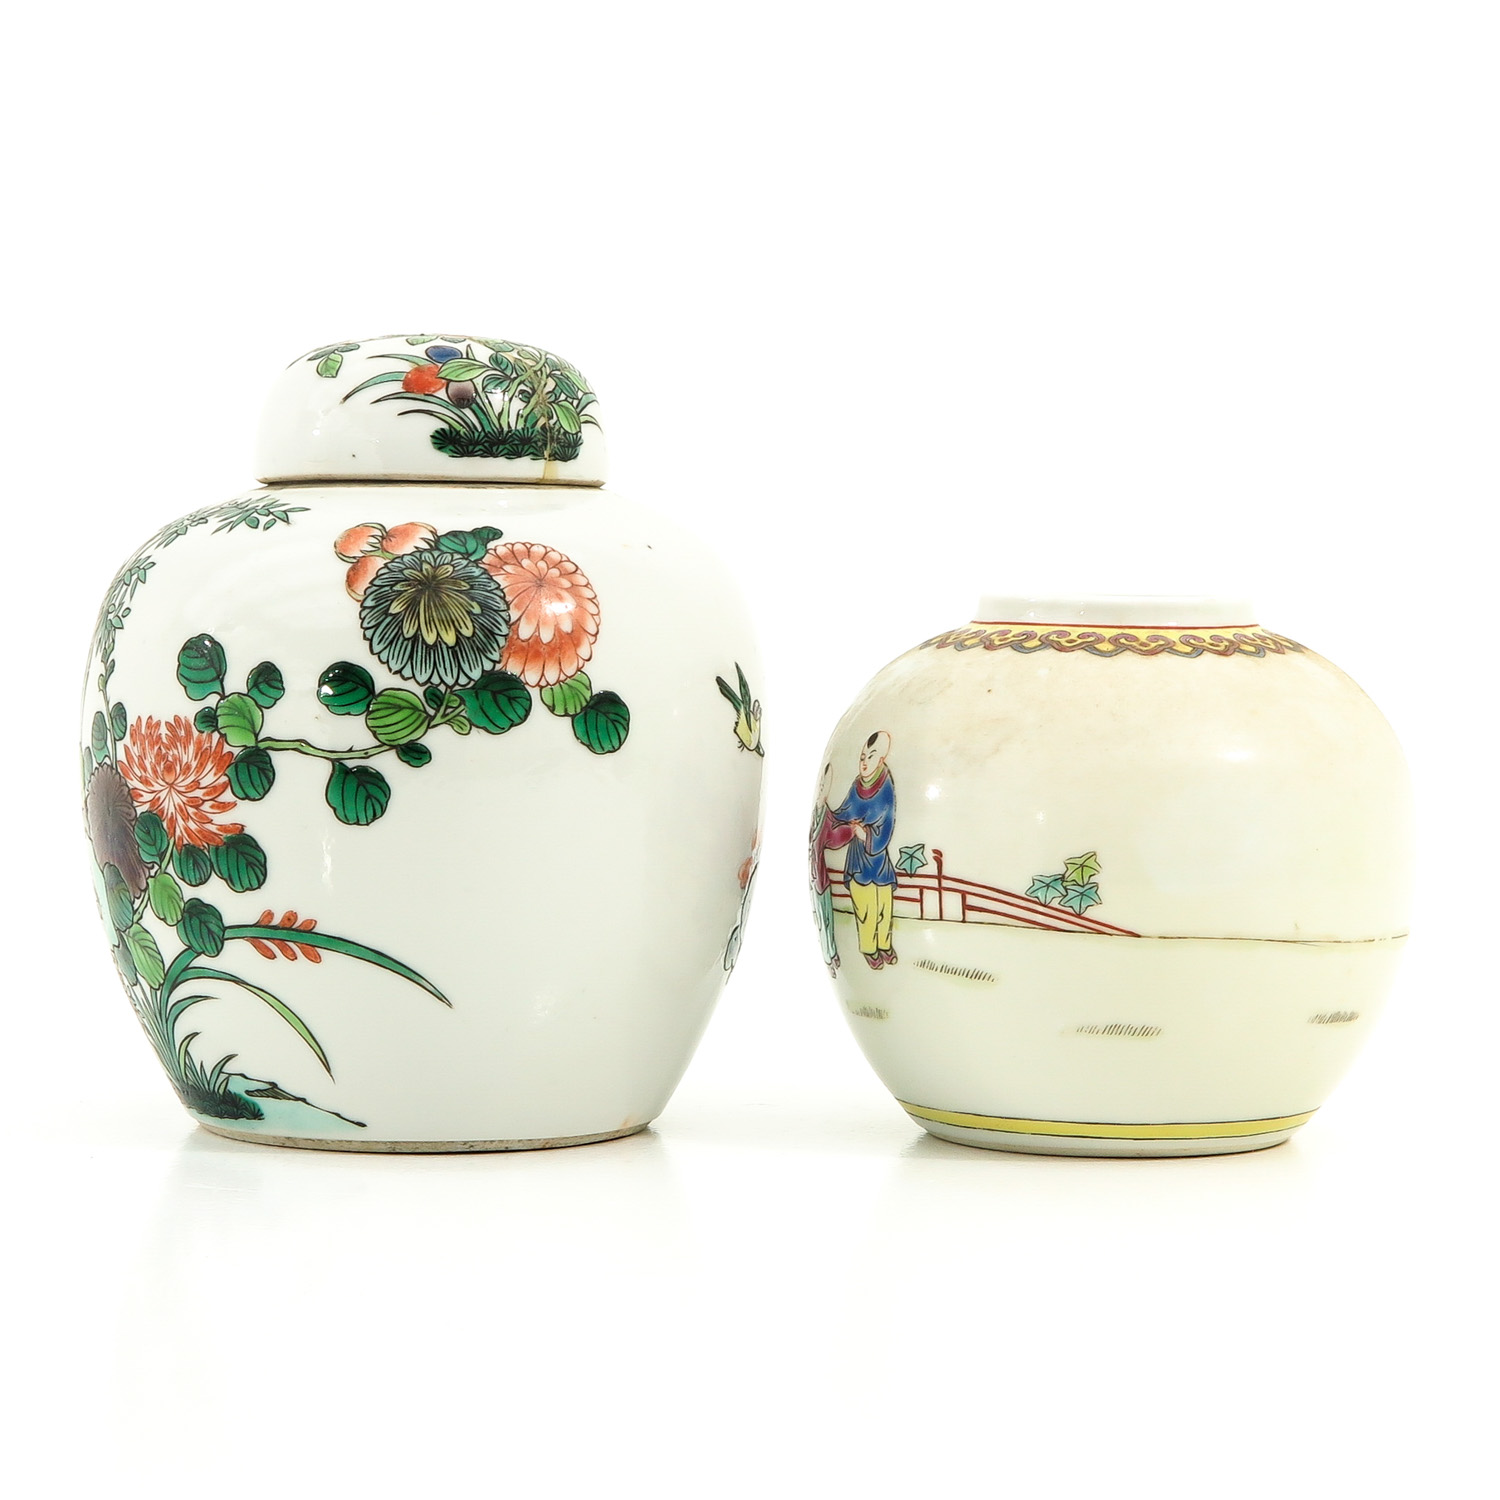 A Lot of 2 Ginger Jars - Image 2 of 9